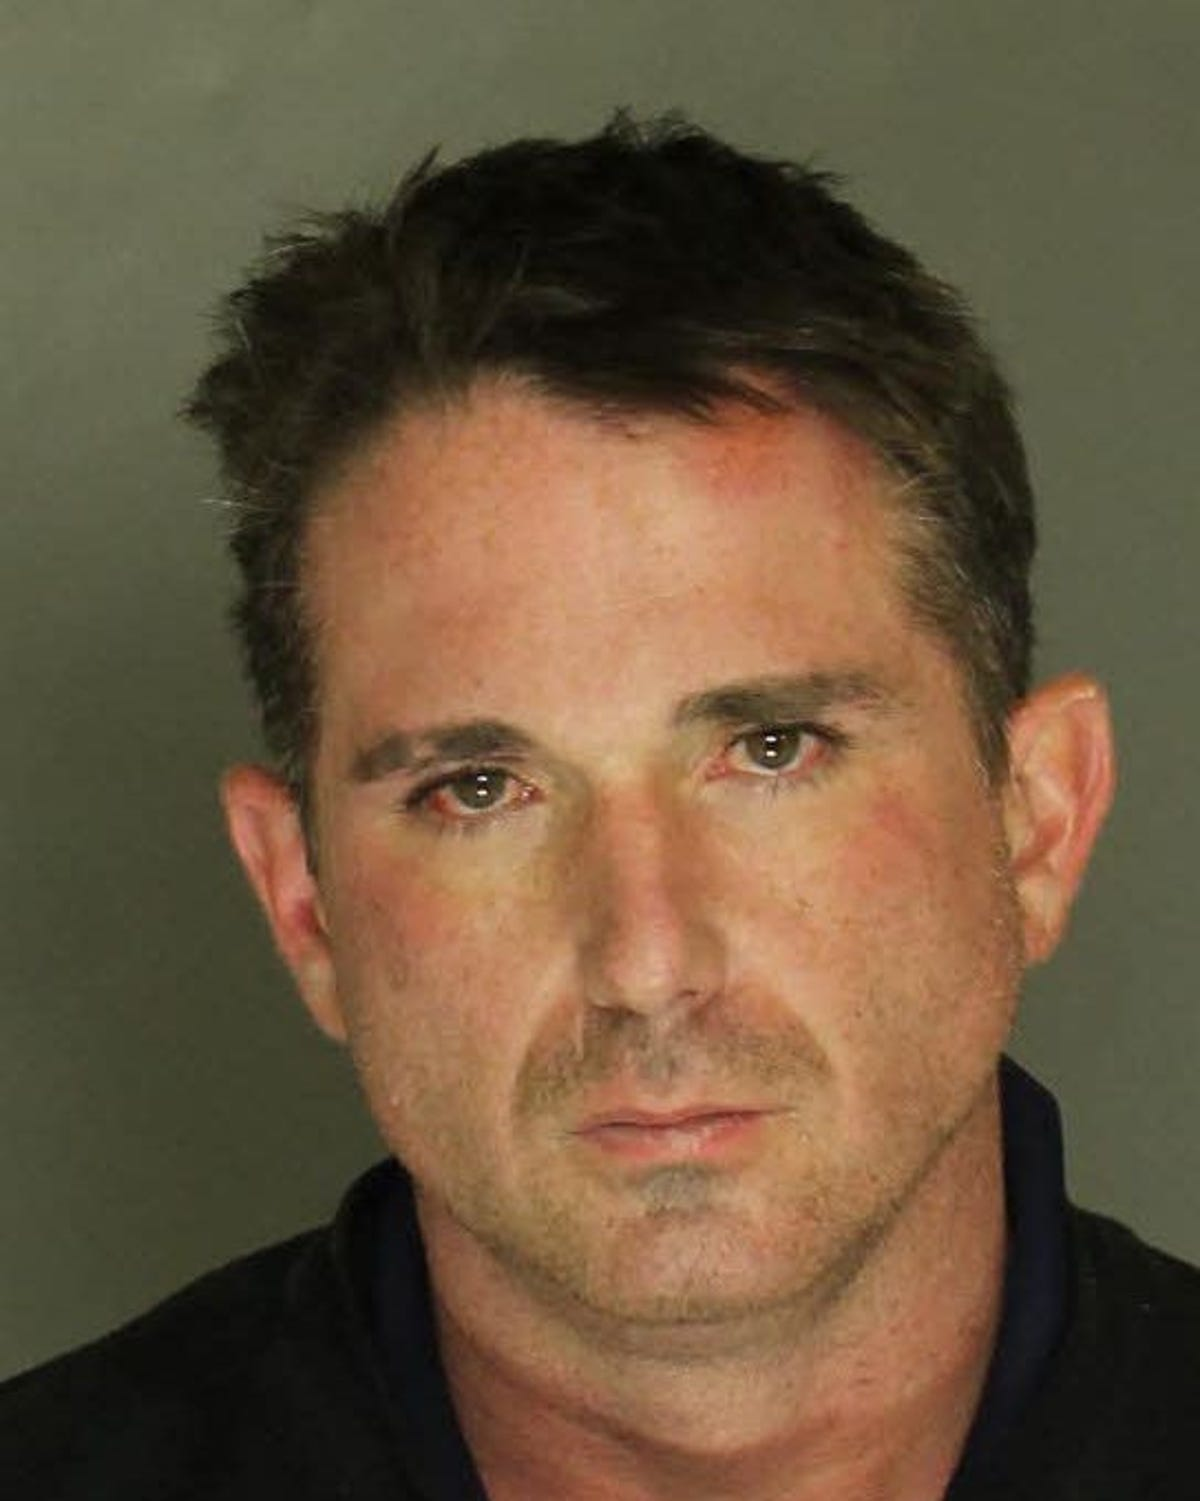 Police: York-area stalker pretended to be a police officer